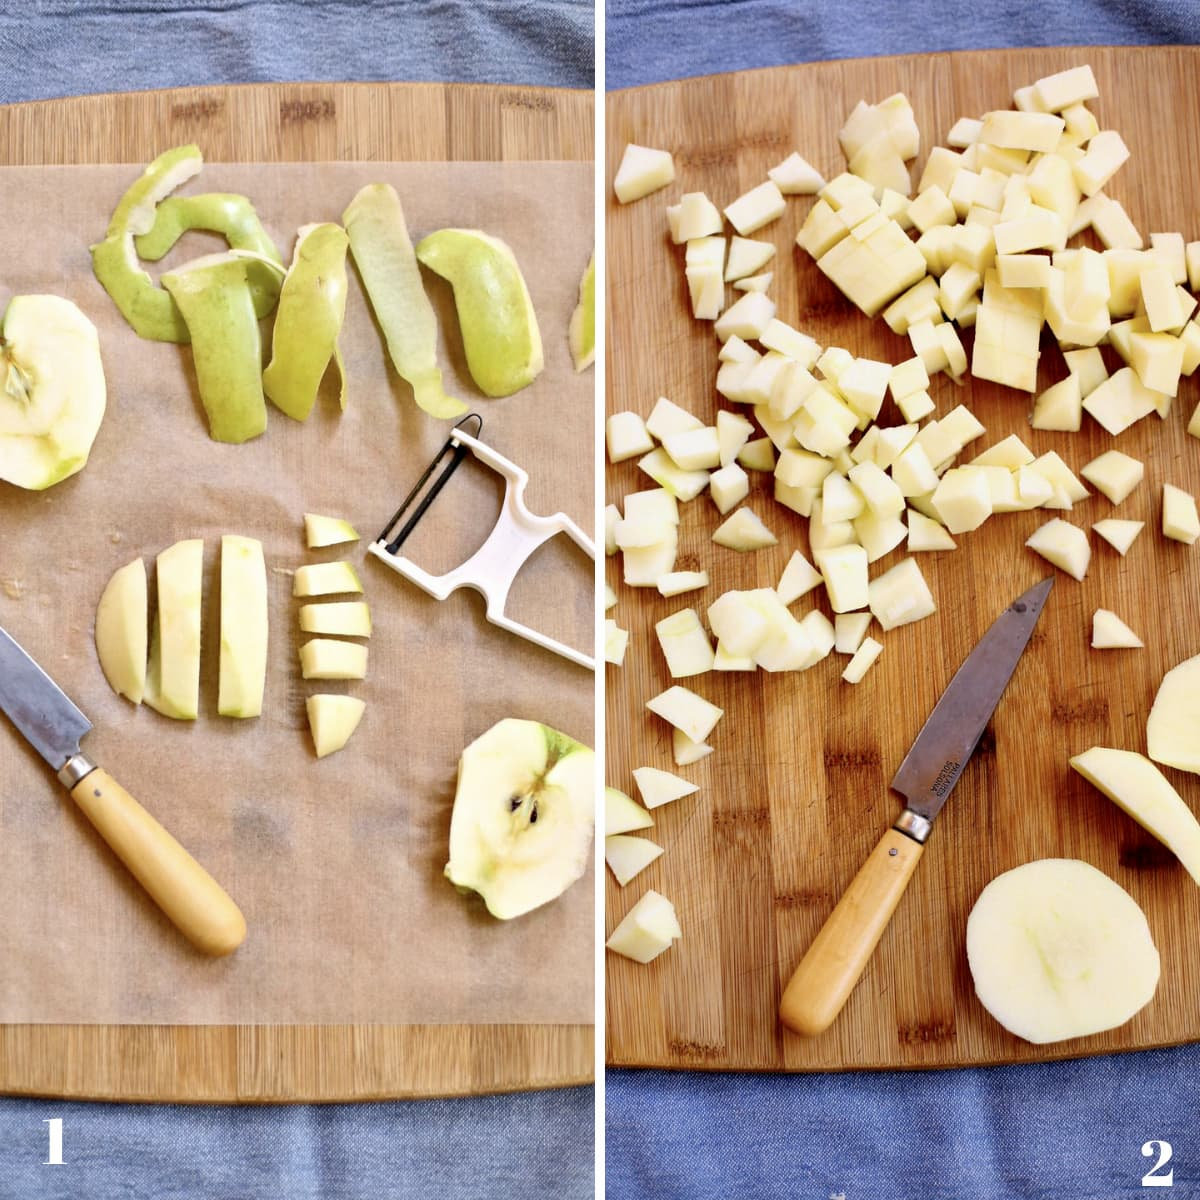 green apples in various stages of peeling and chopping